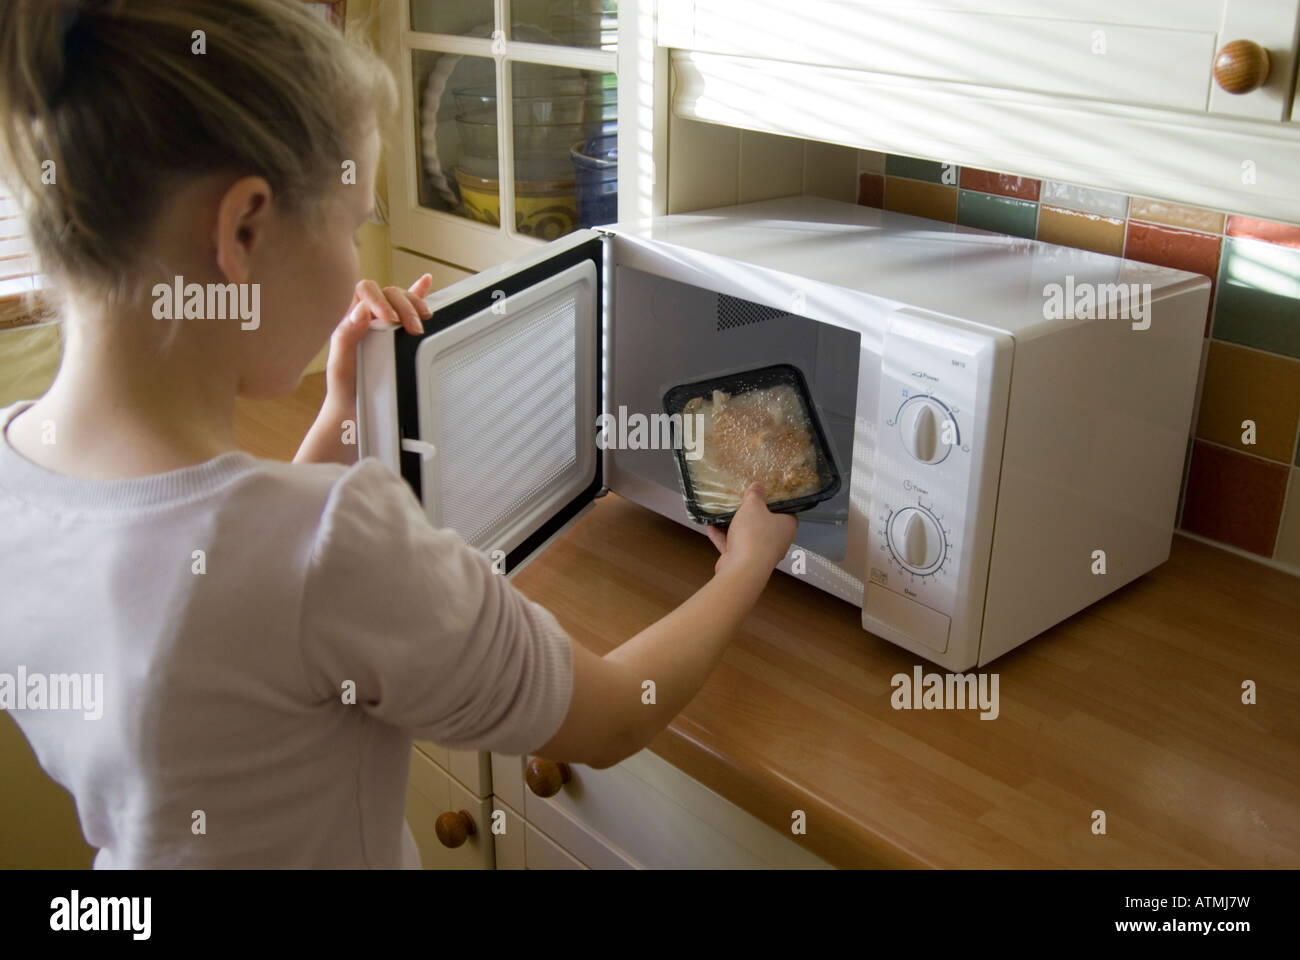 Girl putting ready meal into a microwave oven, England UK - Stock Image